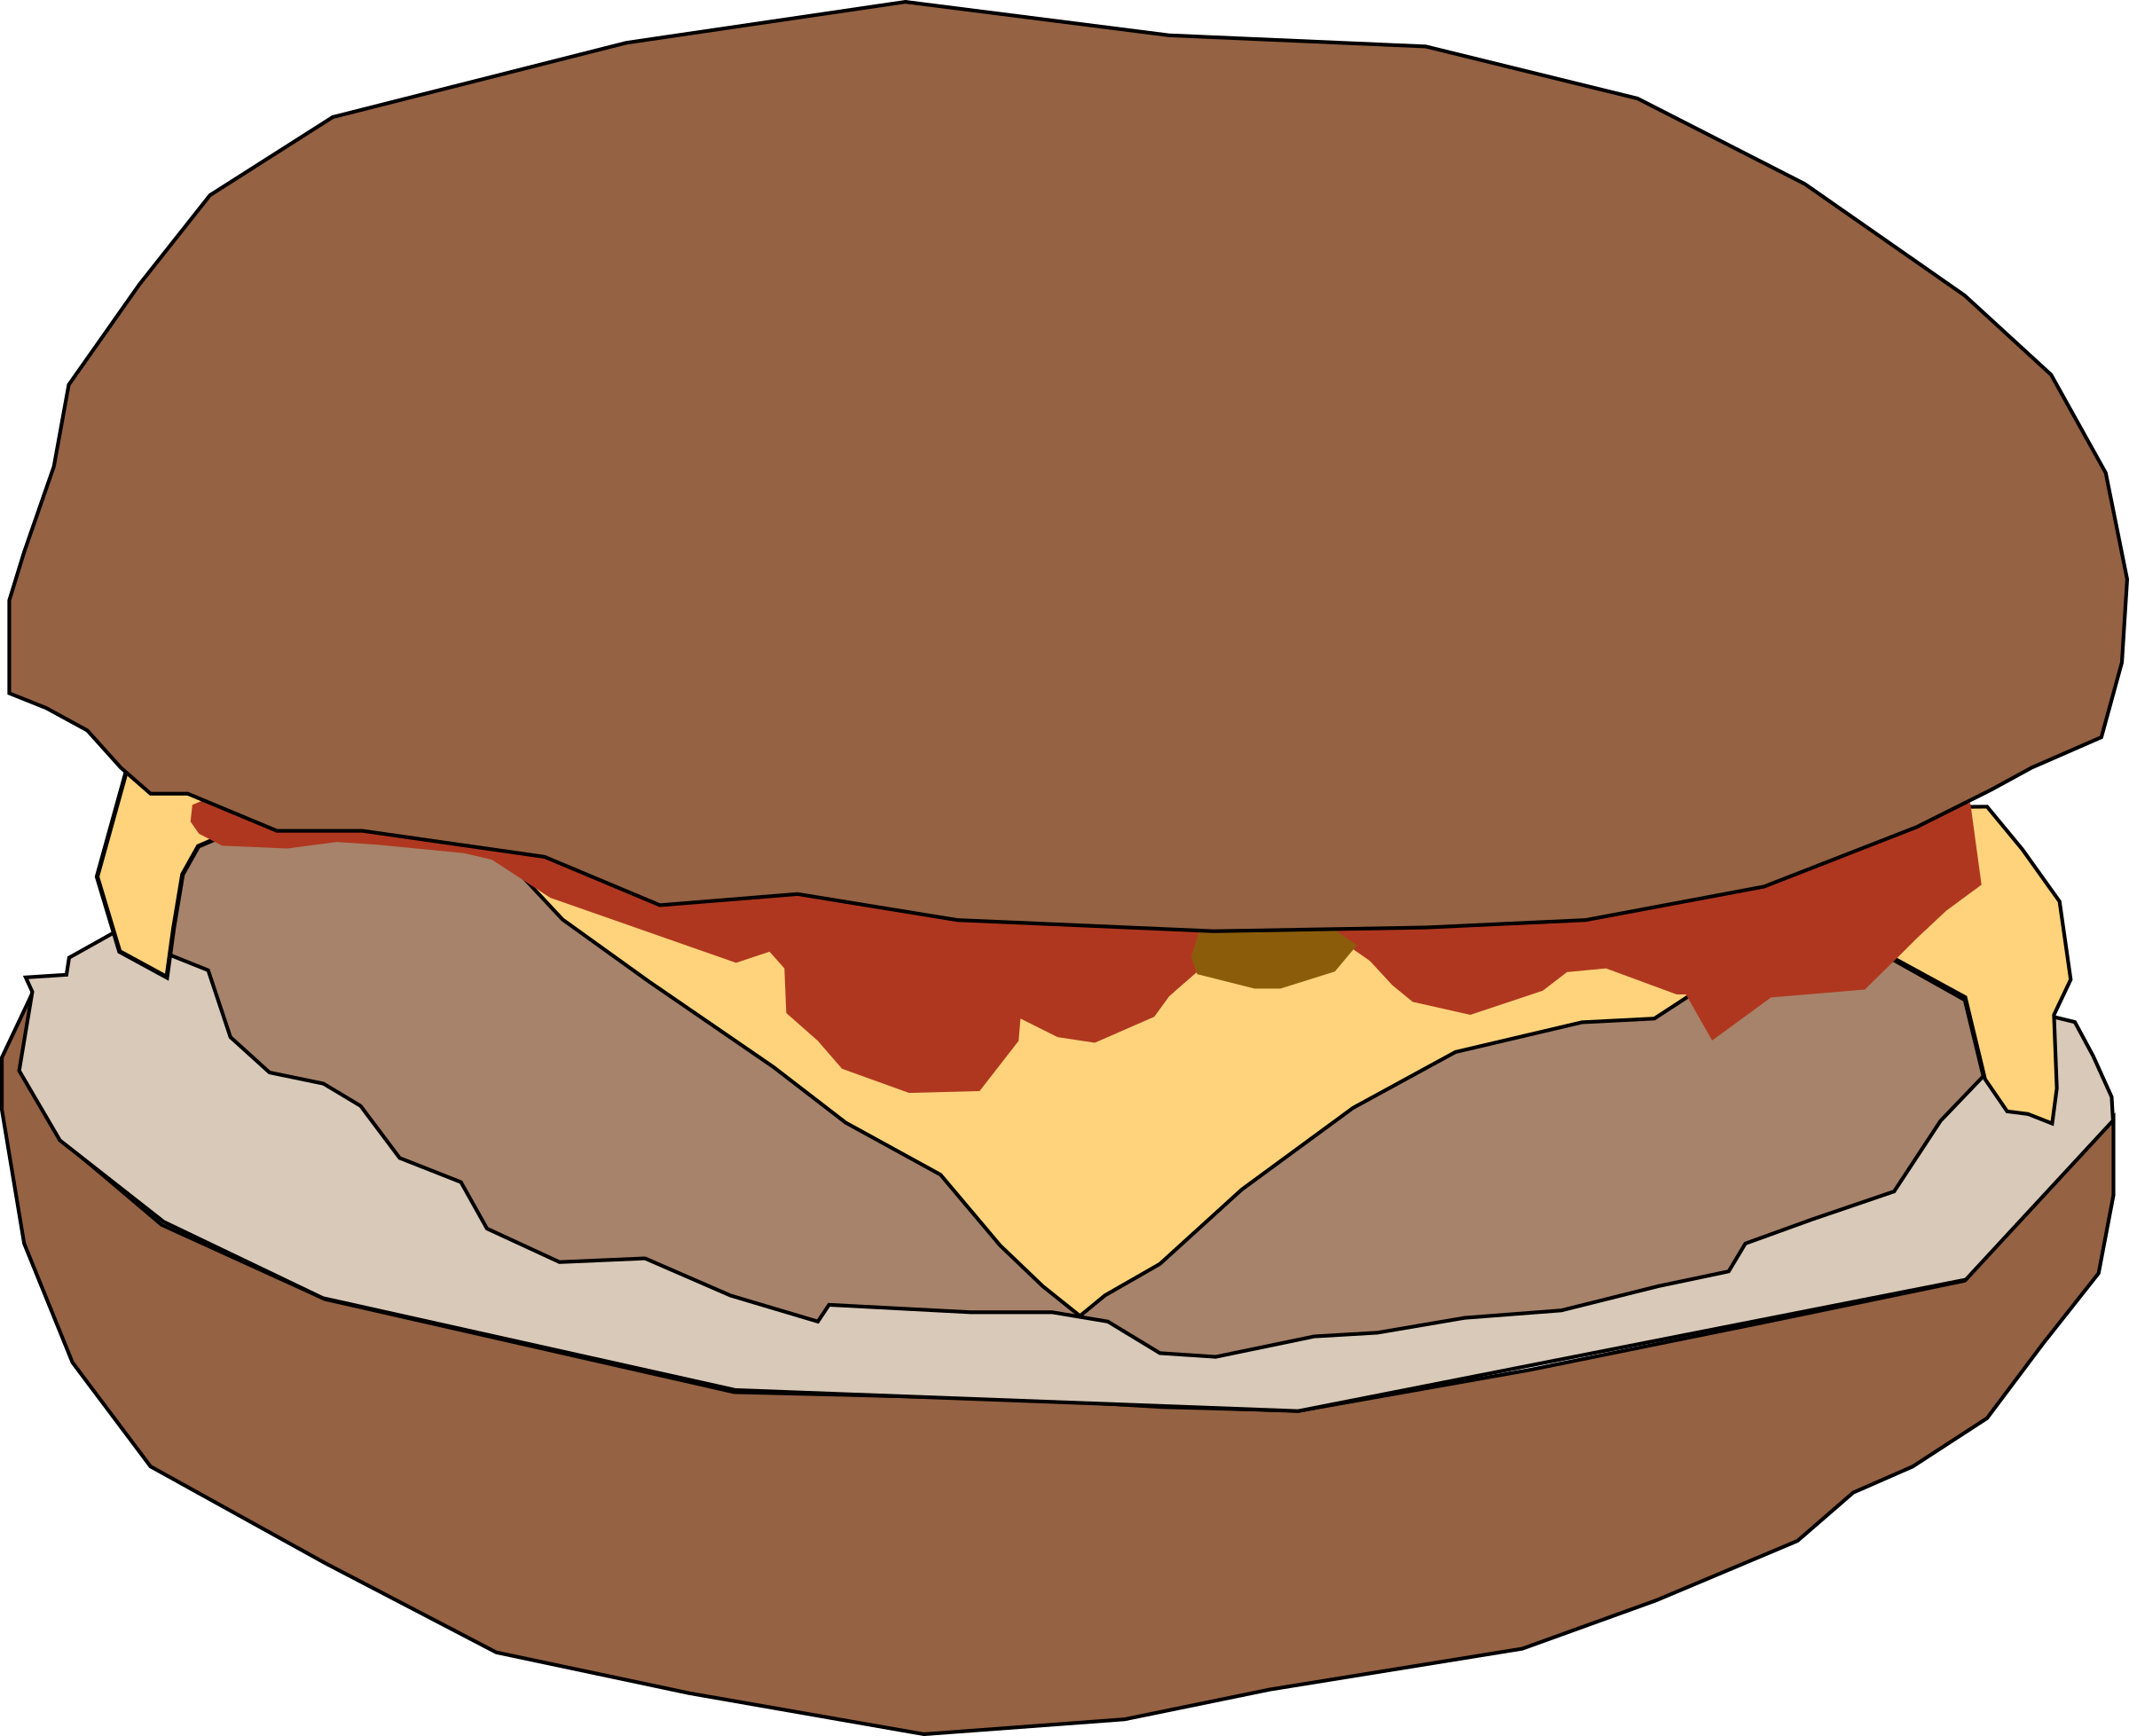 hamburger1 by Machovka